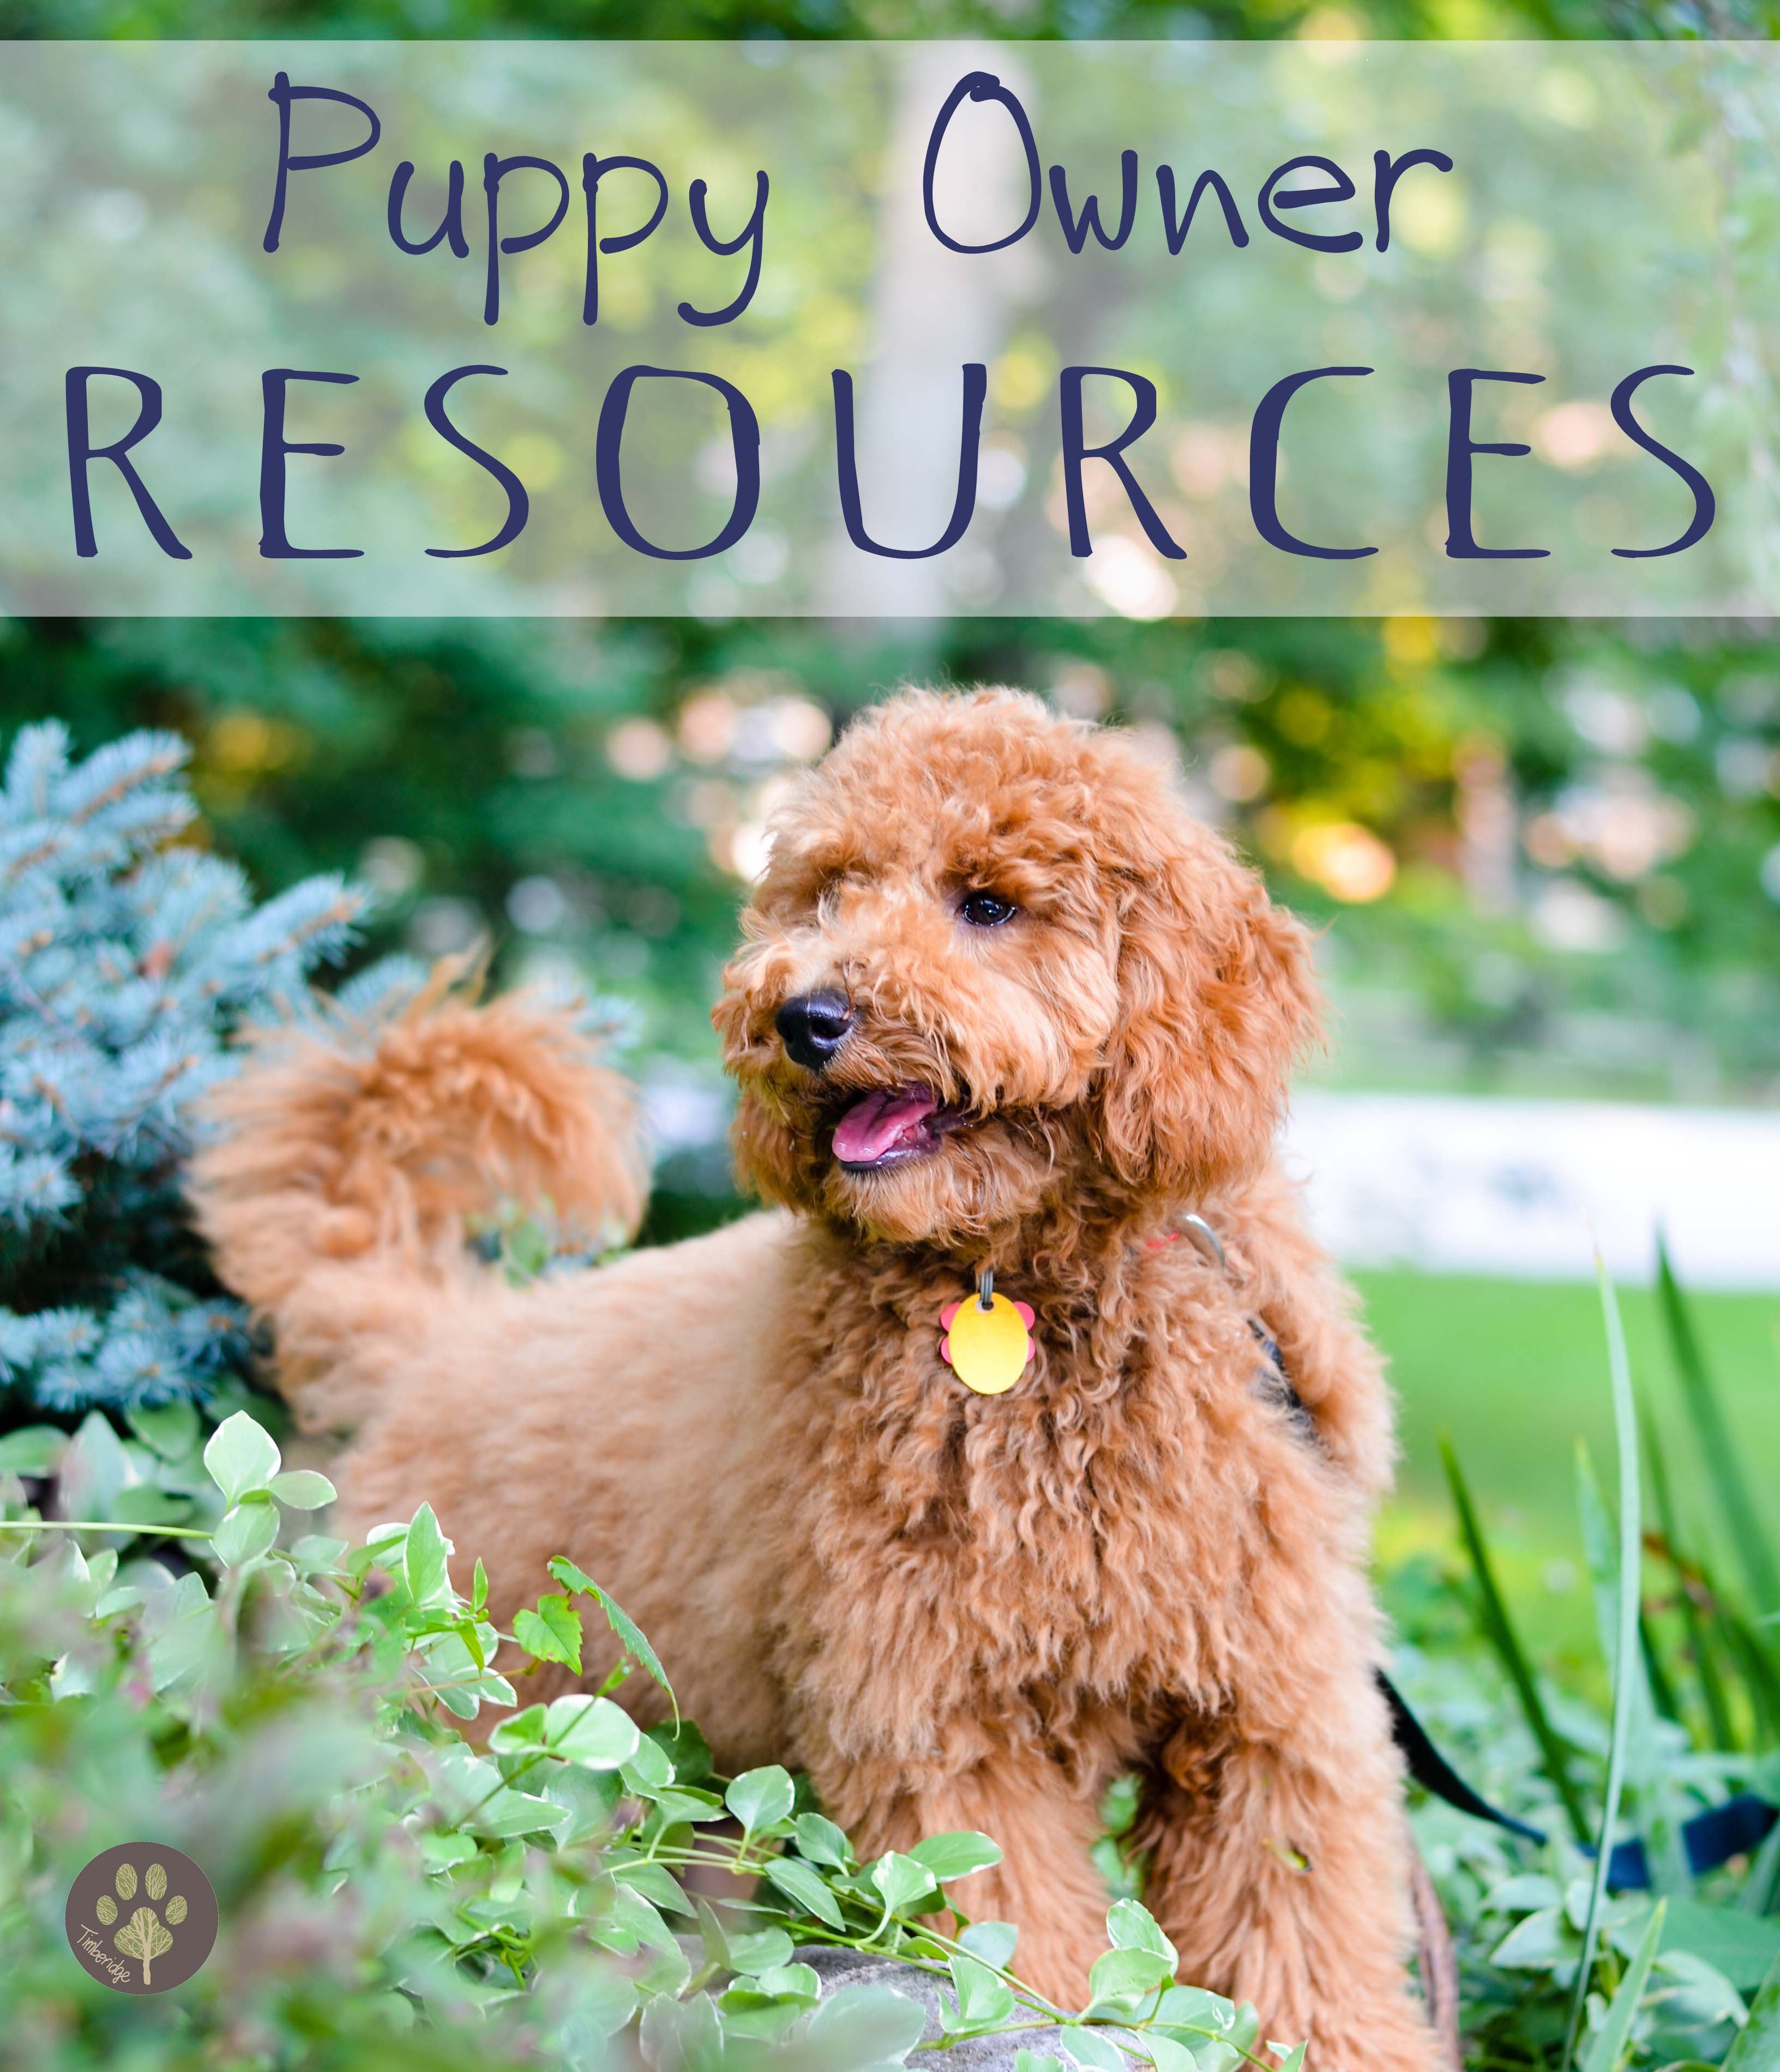 Puppy Owner Resources Timberidge Goldendoodles